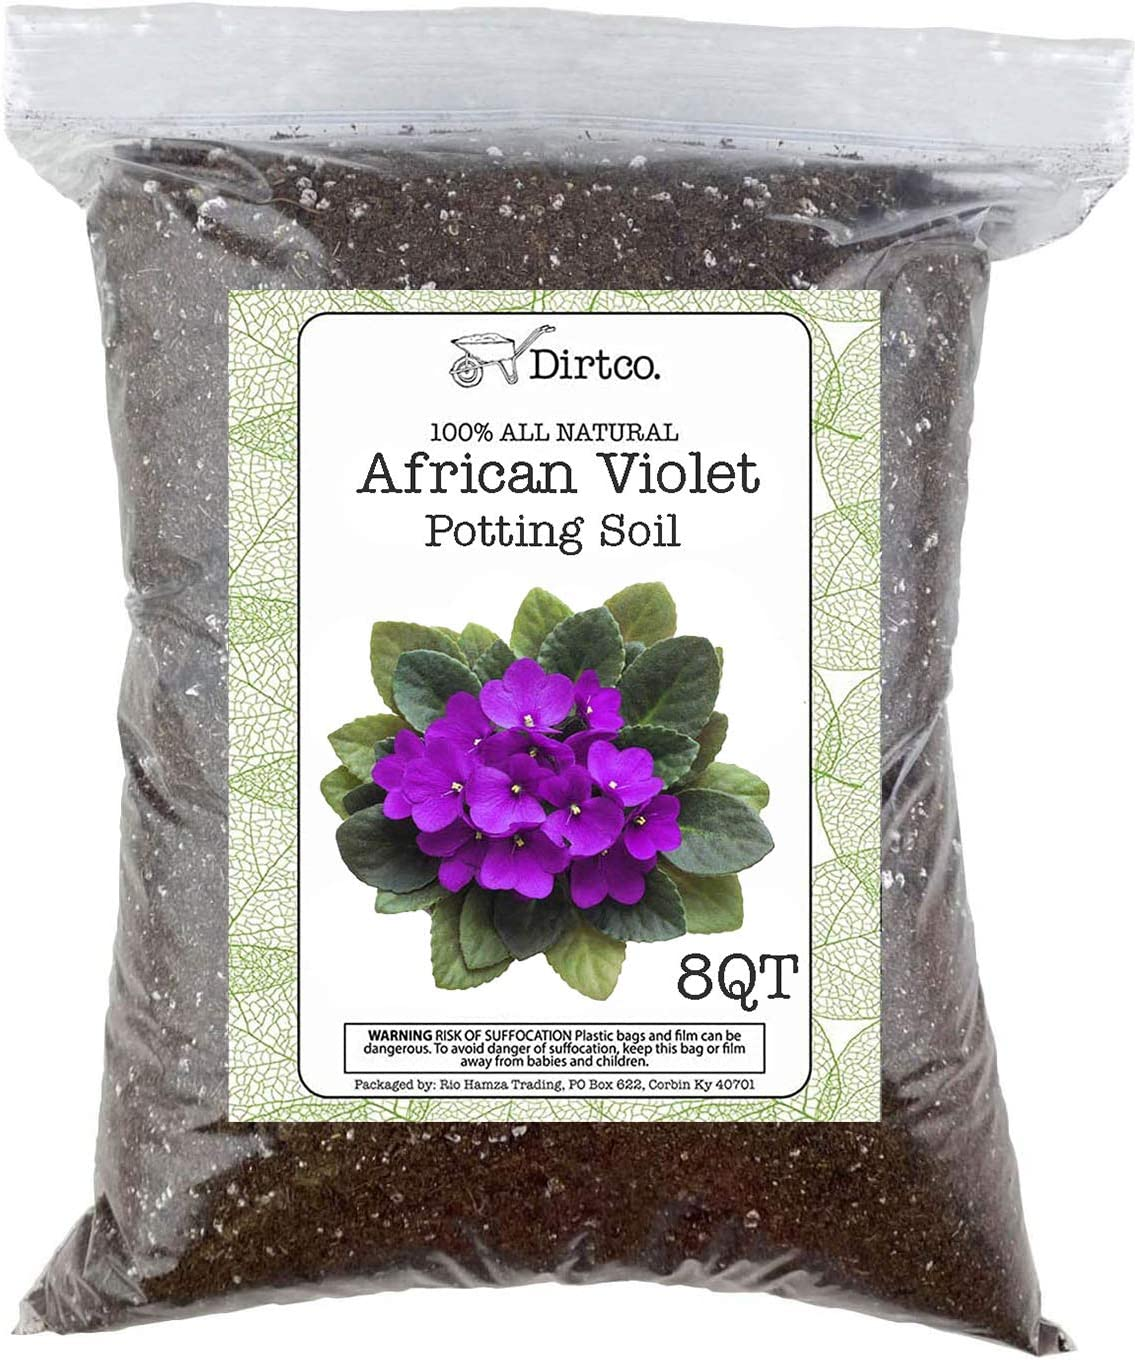 African Violet Potting Mixture, All Natural, No Fertilizer Added, Two Gallon Re-Sealable Bag, Hand Blended in Small Batches - 8QT